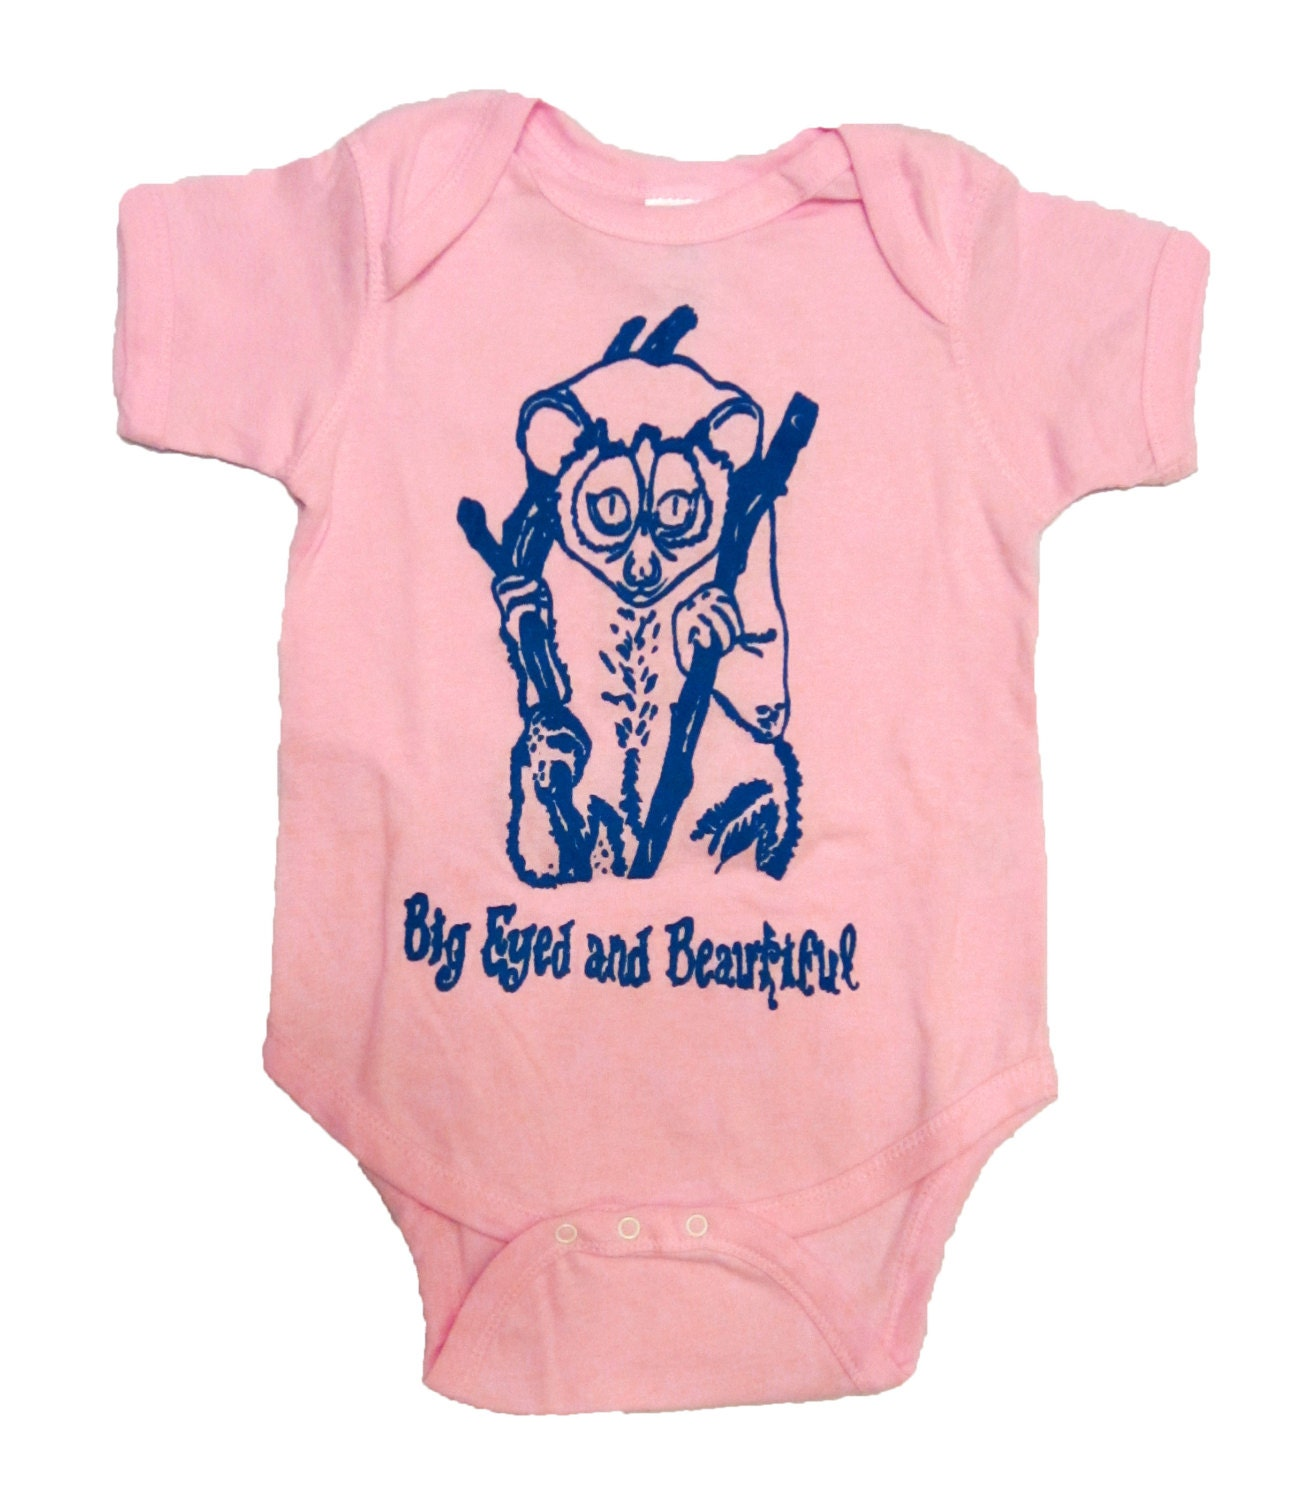 Baby Gifts Quirky : Quirky baby gift clothing depicting slow by